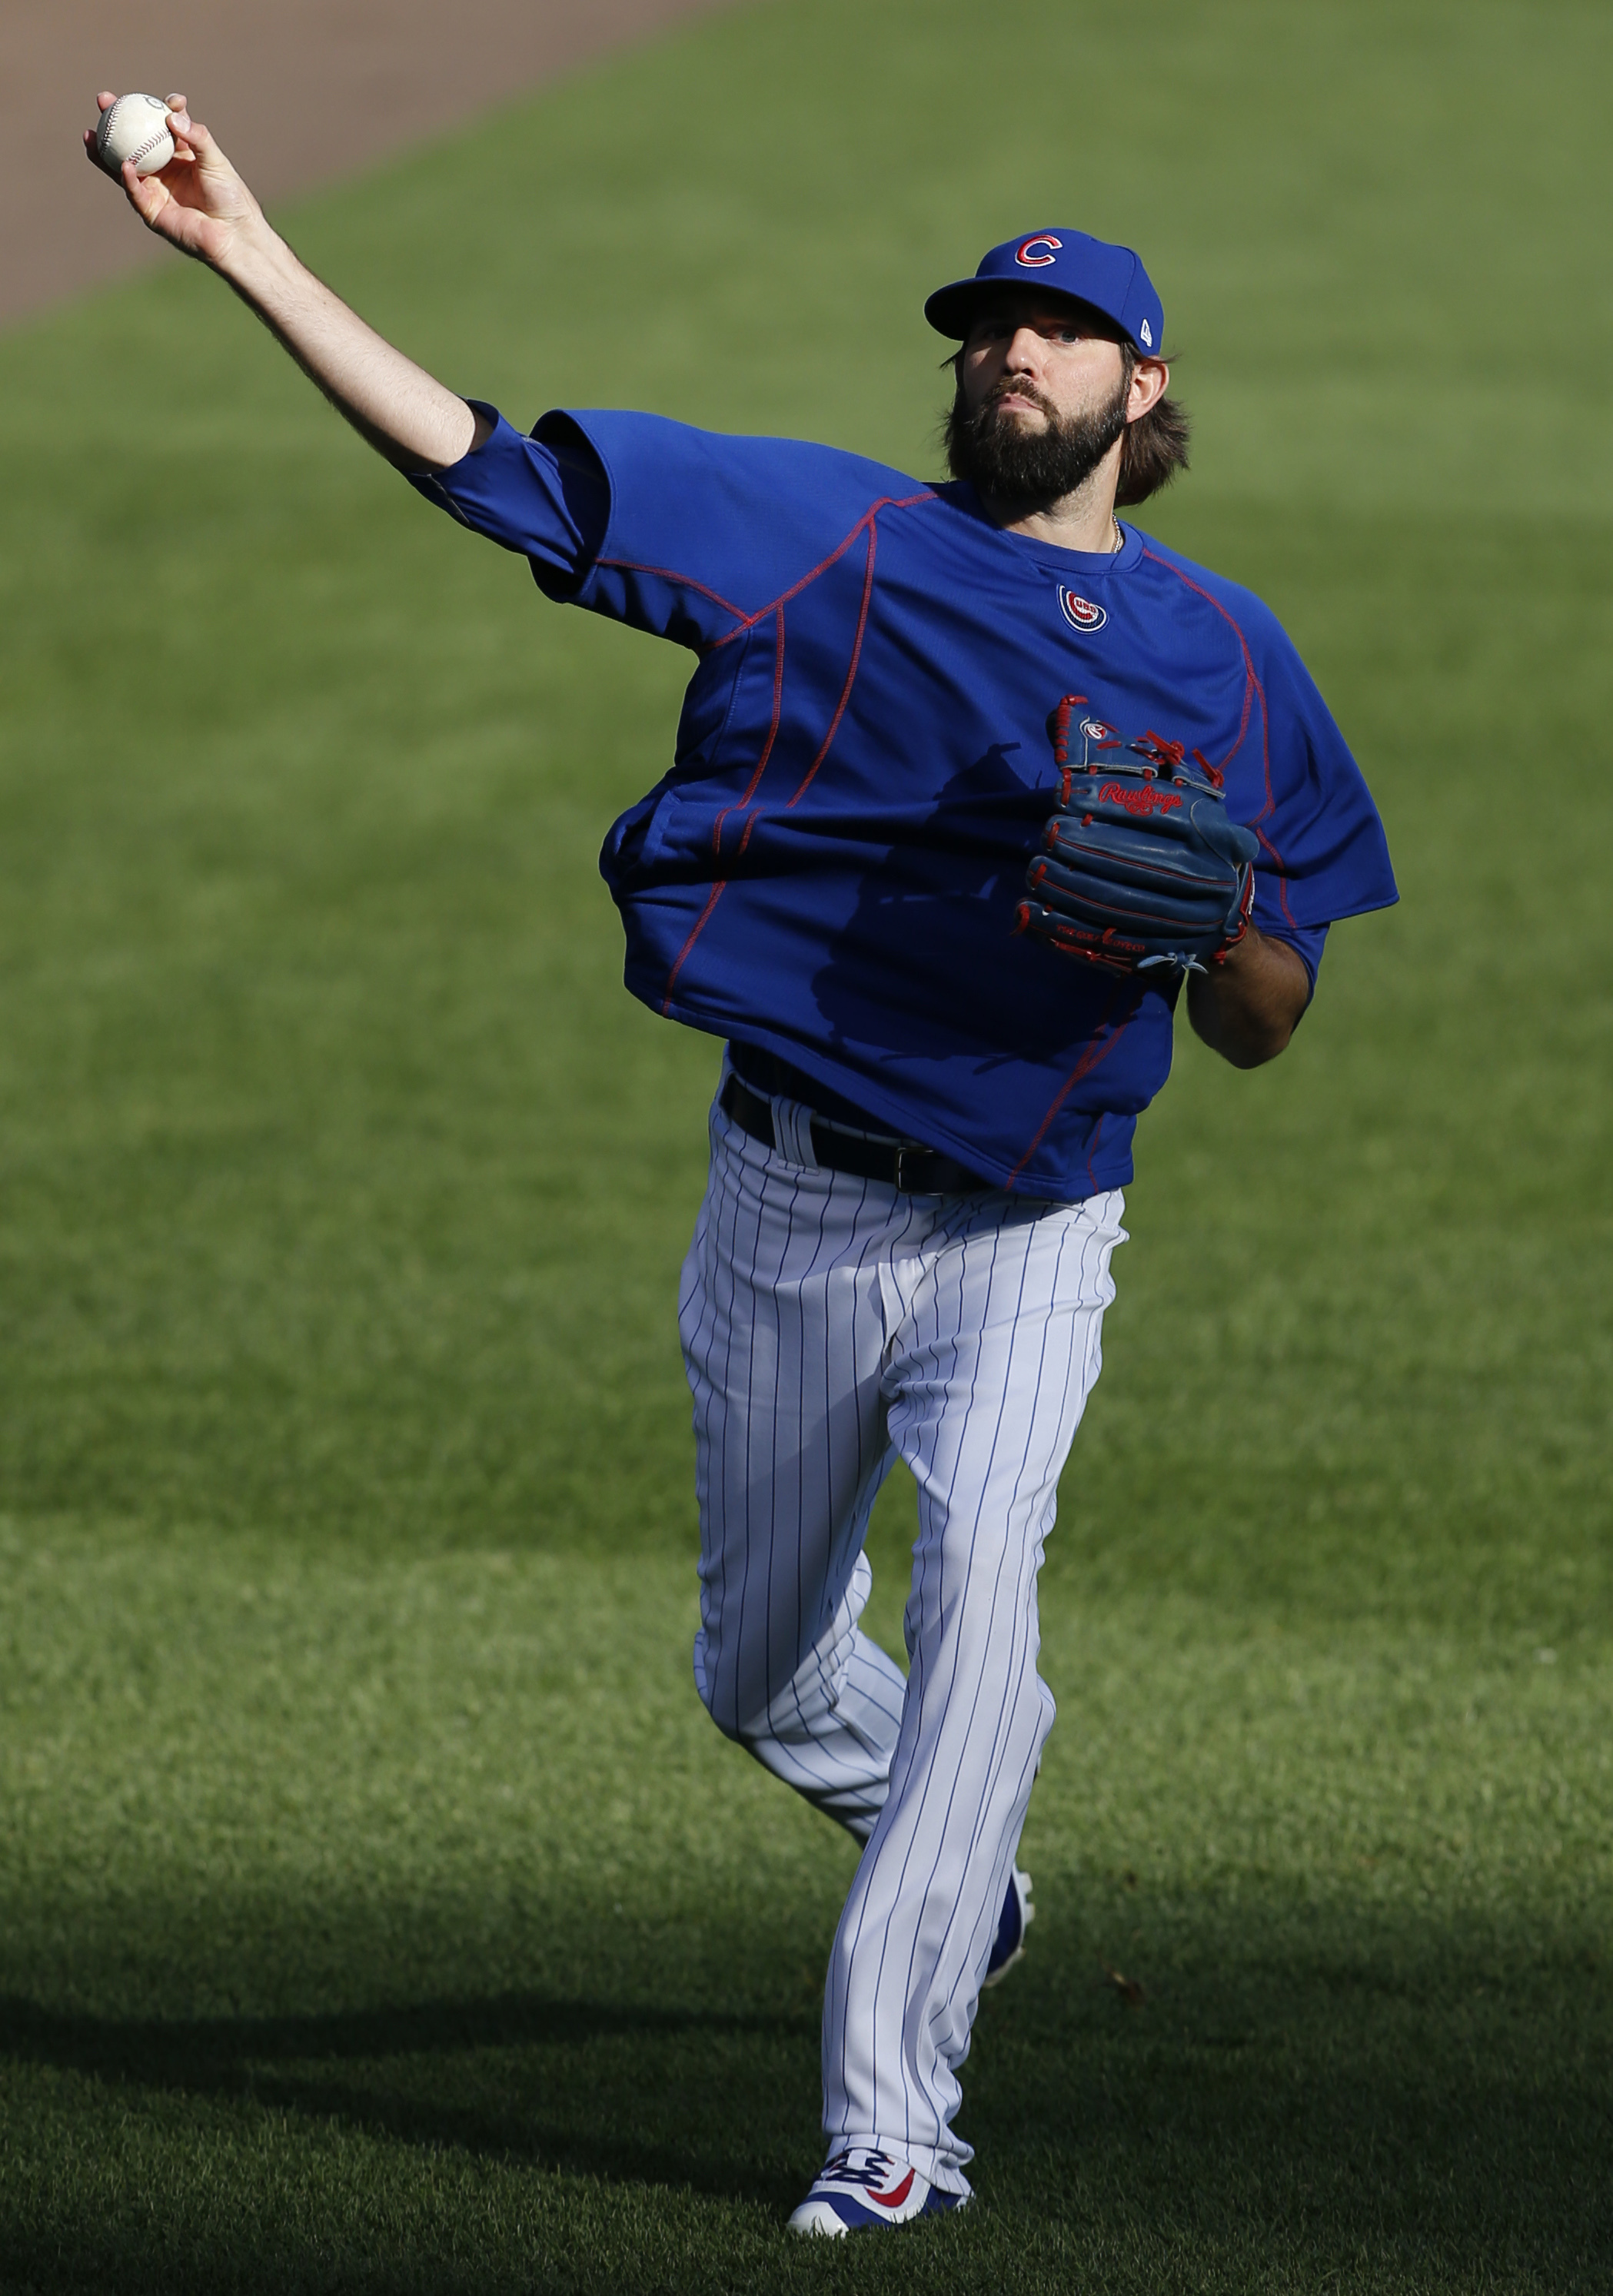 Chicago Cubs pitcher Jason Hammel throws a ball during a team workout in preparation for Saturday's Game 1 in baseball's National League Championship Series in Chicago, Thursday, Oct. 13, 2016. (AP Photo/Nam Y. Huh)